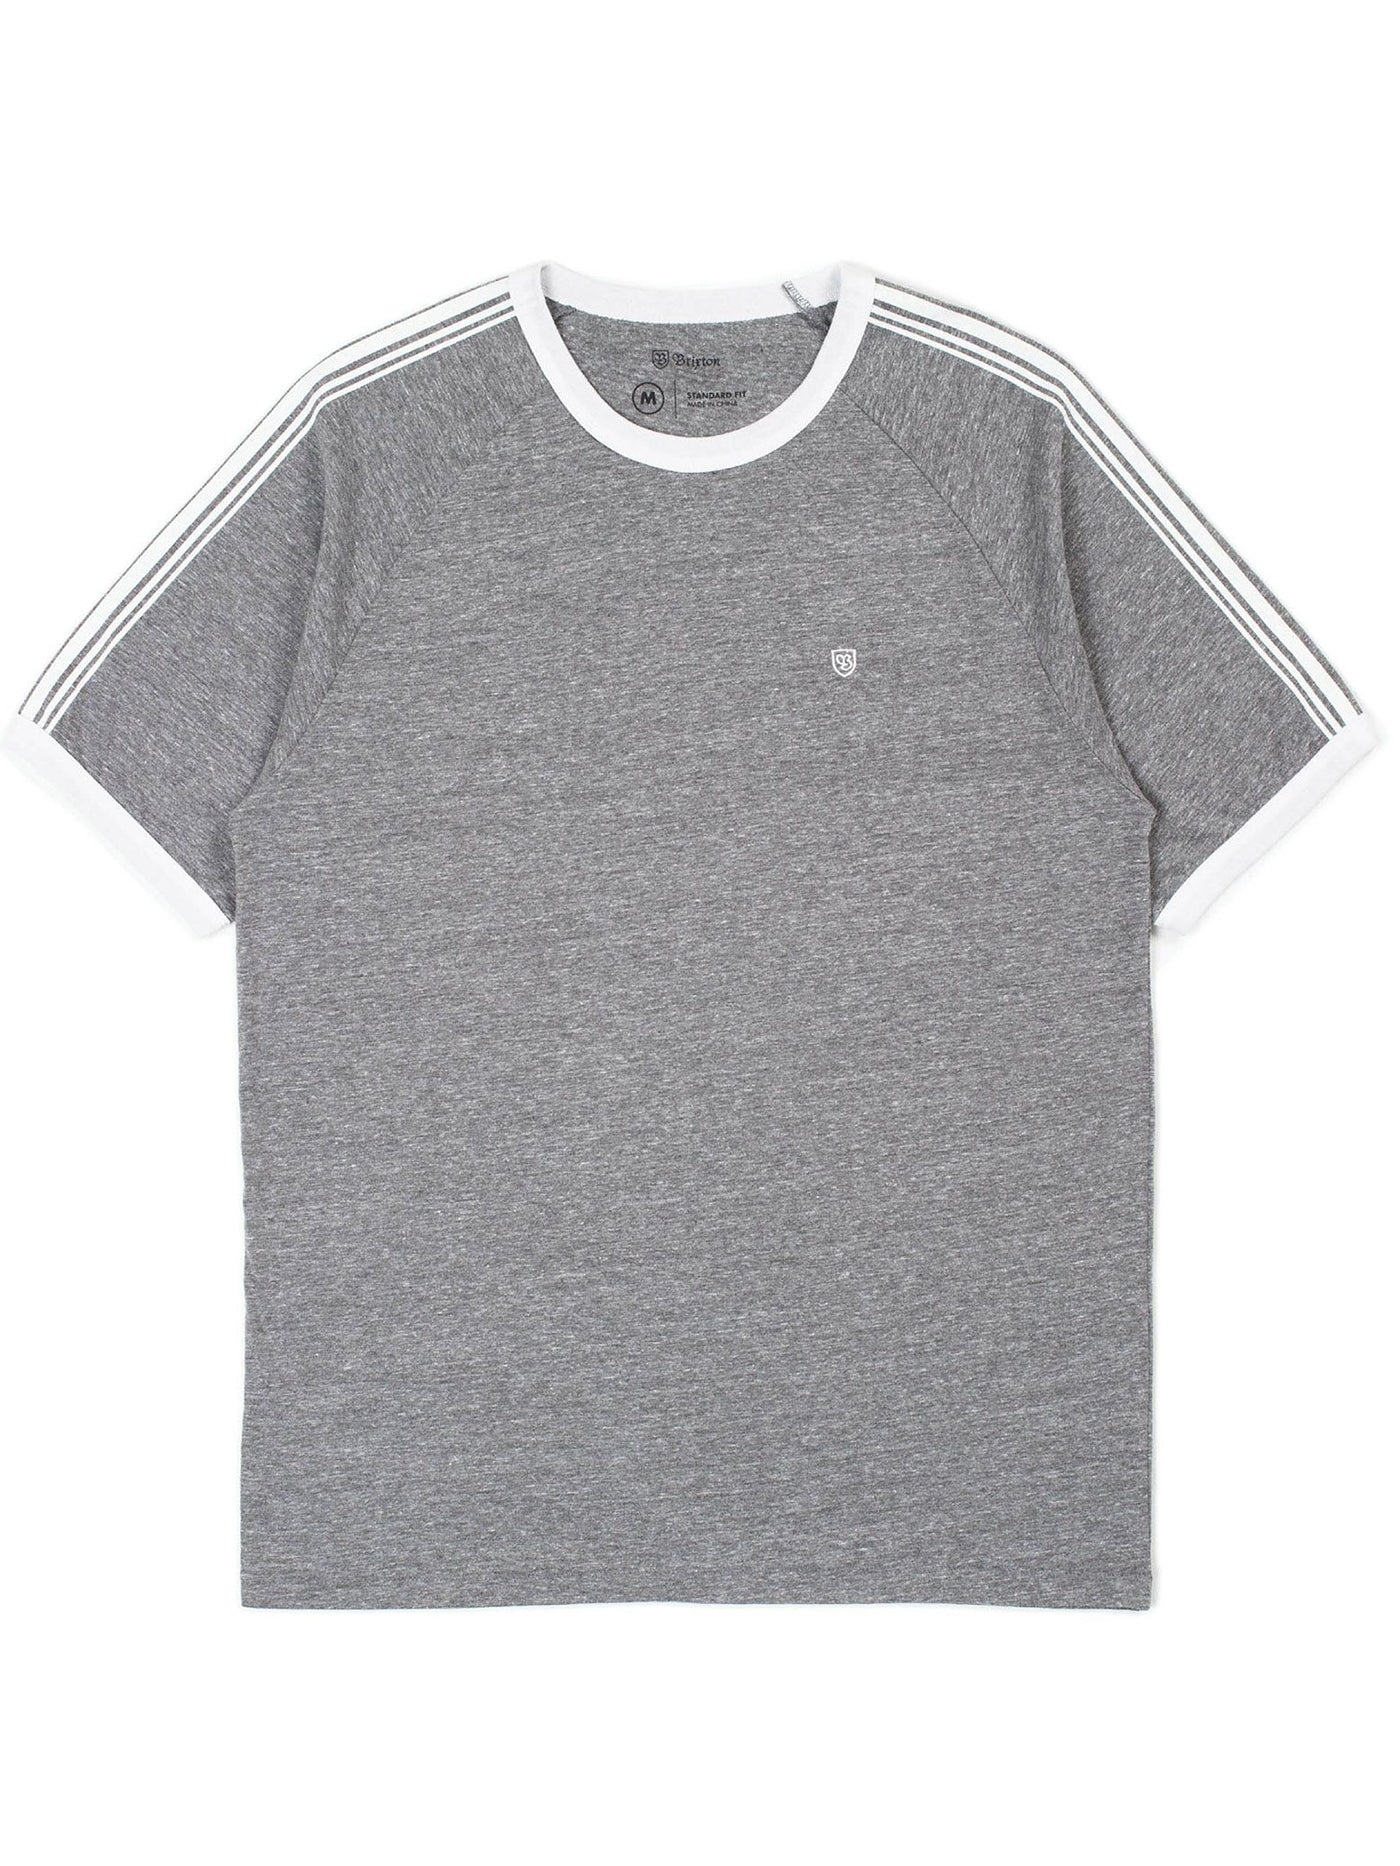 HEATHER GREY/WHITE